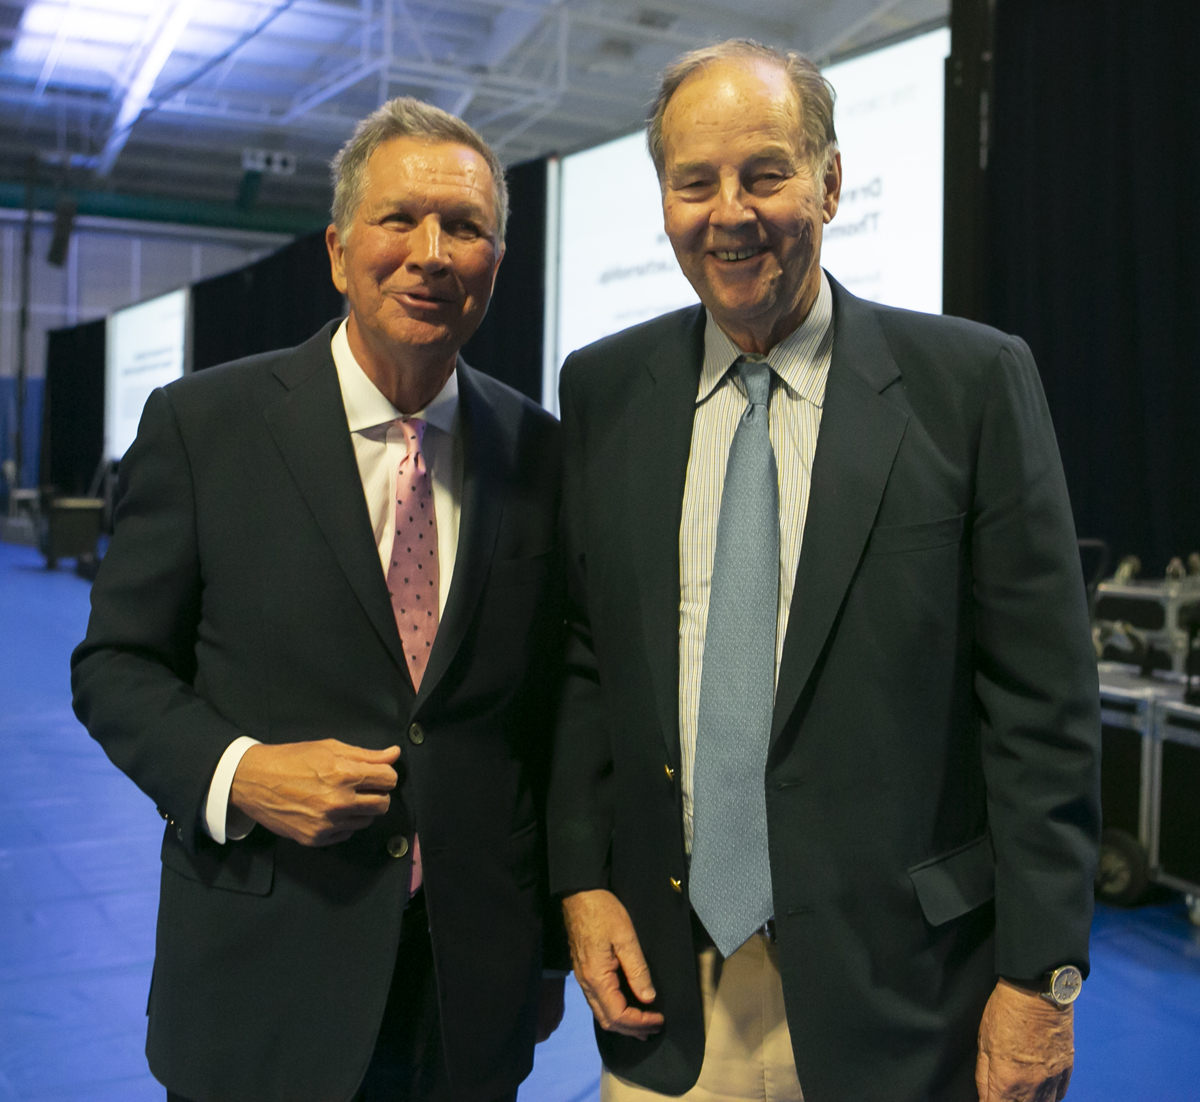 John Kasich along side former N.J. Governor and Drew President Tom Kean